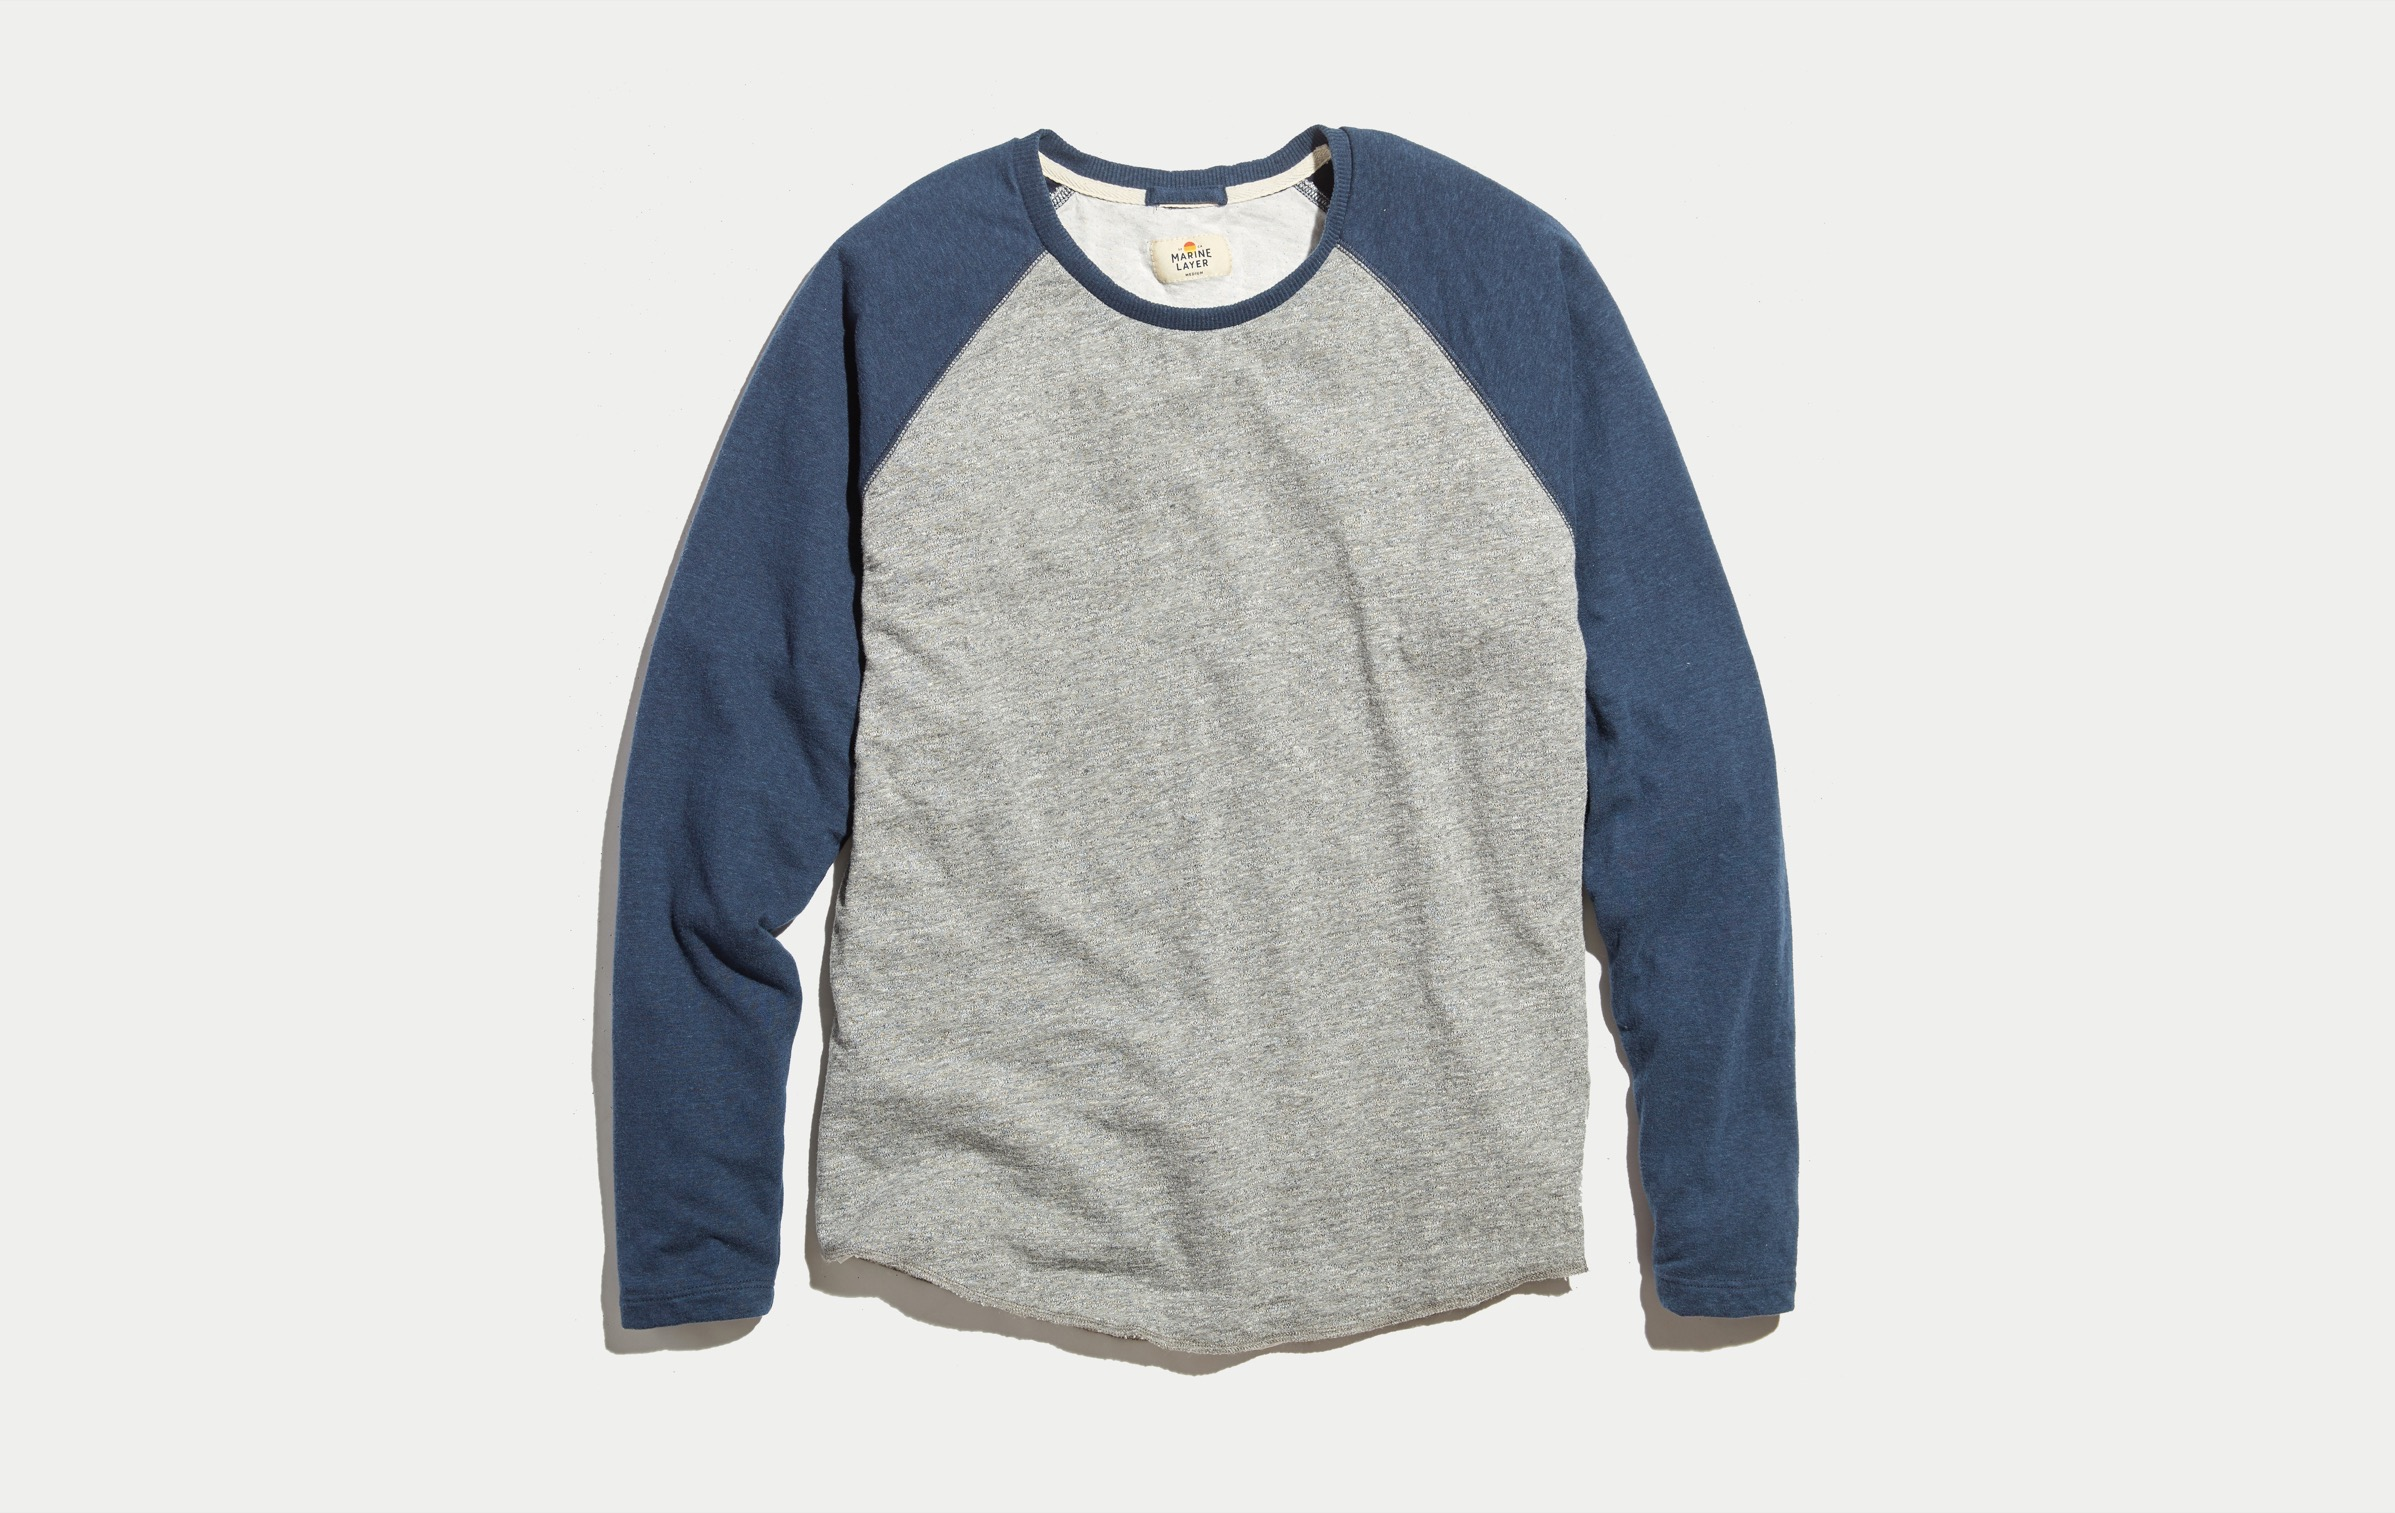 Double Knit Baseball Raglan In Heather Grey Navy Marine Layer